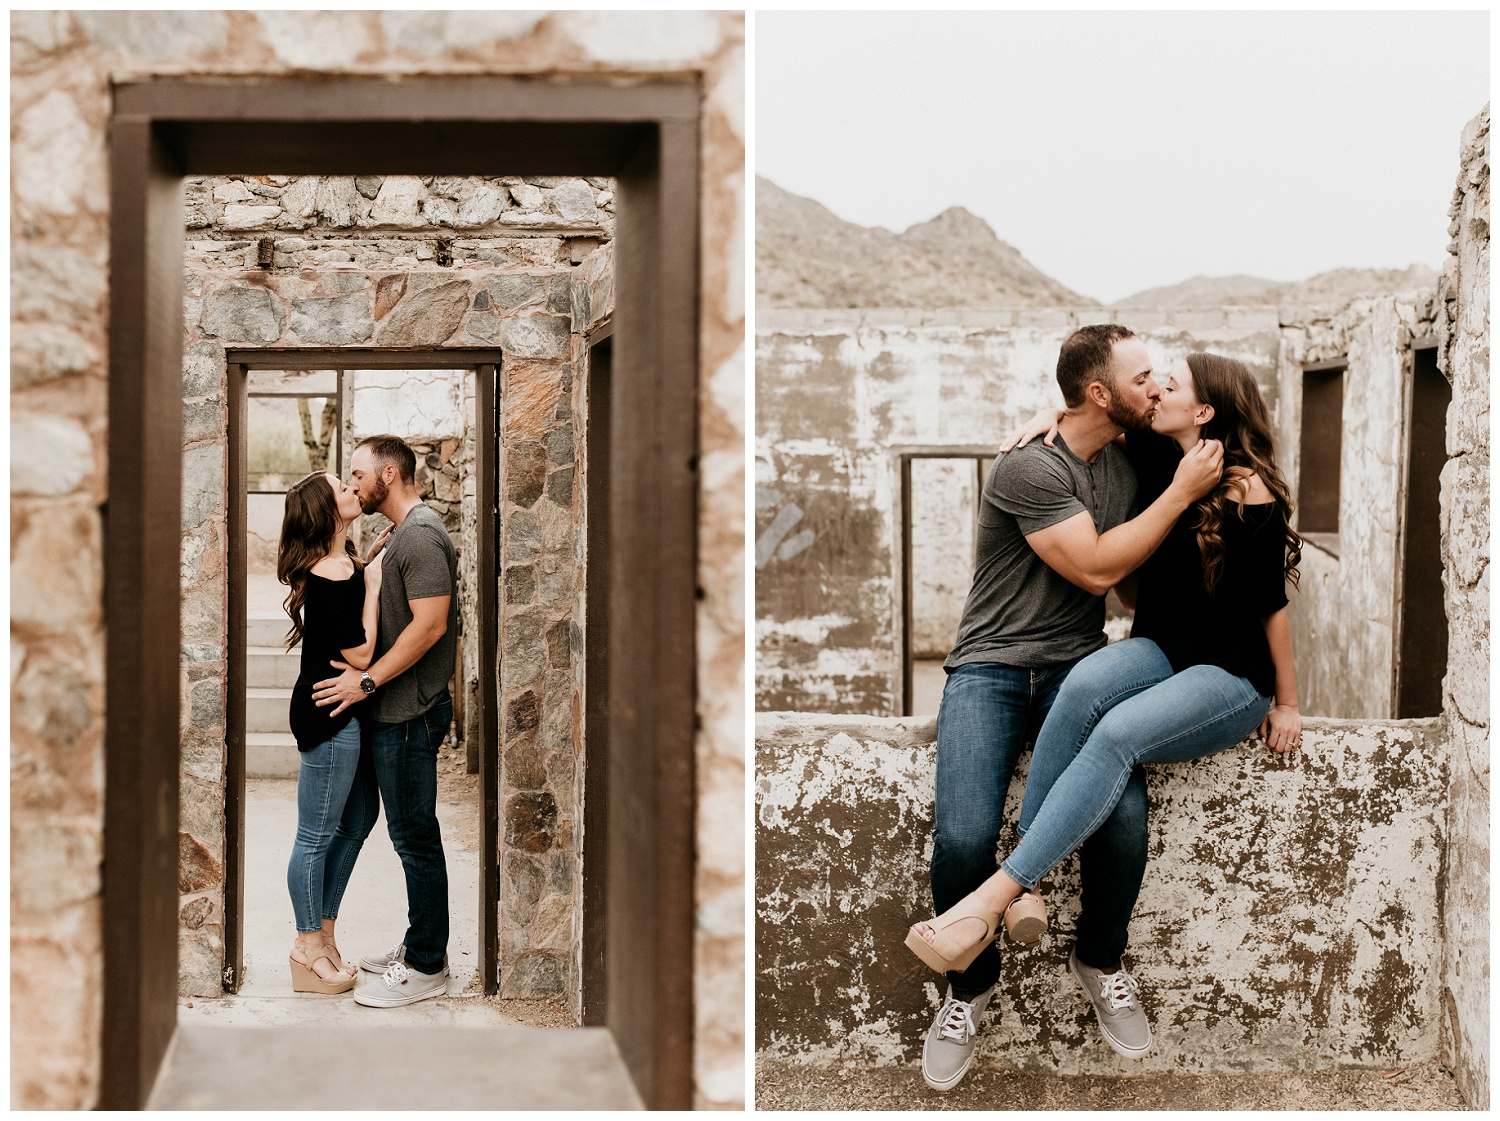 South Mountain Engagement Session Phoenix Wedding Photographer Ashtyn Nicole Photo 05